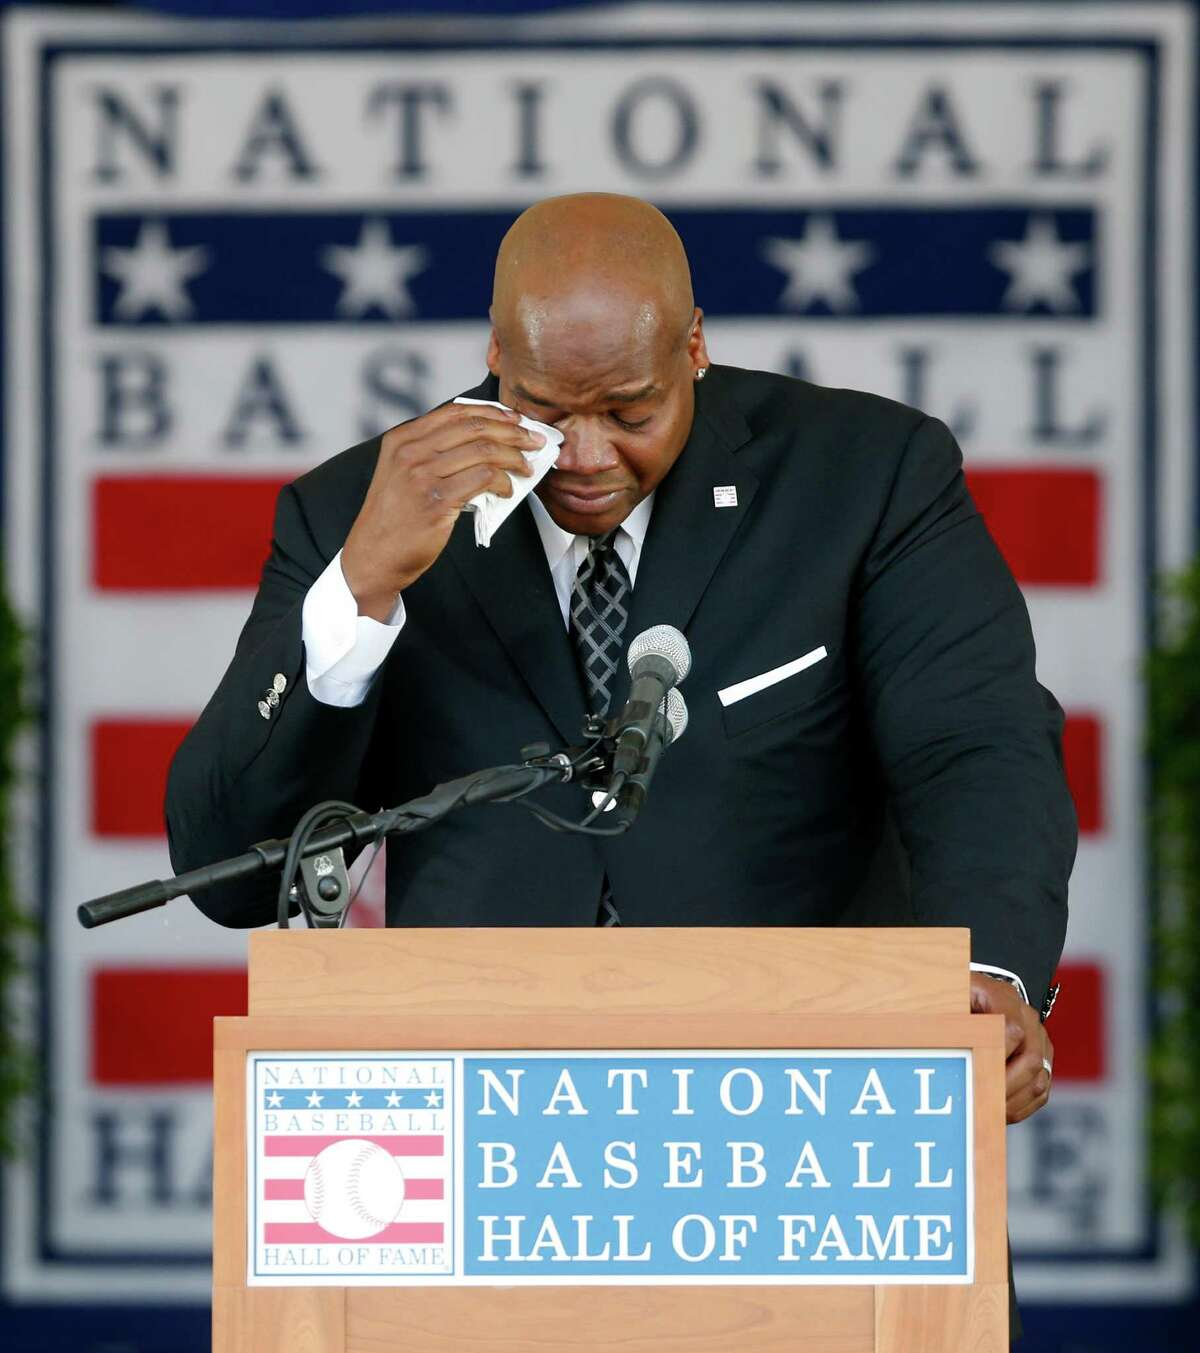 National Baseball Hall of Fame inductee Frank Thomas gets emotional as he speaks during an induction ceremony at the Clark Sports Center on Sunday, July 27, 2014, in Cooperstown, N.Y. (AP Photo/Mike Groll) ORG XMIT: NYMG115